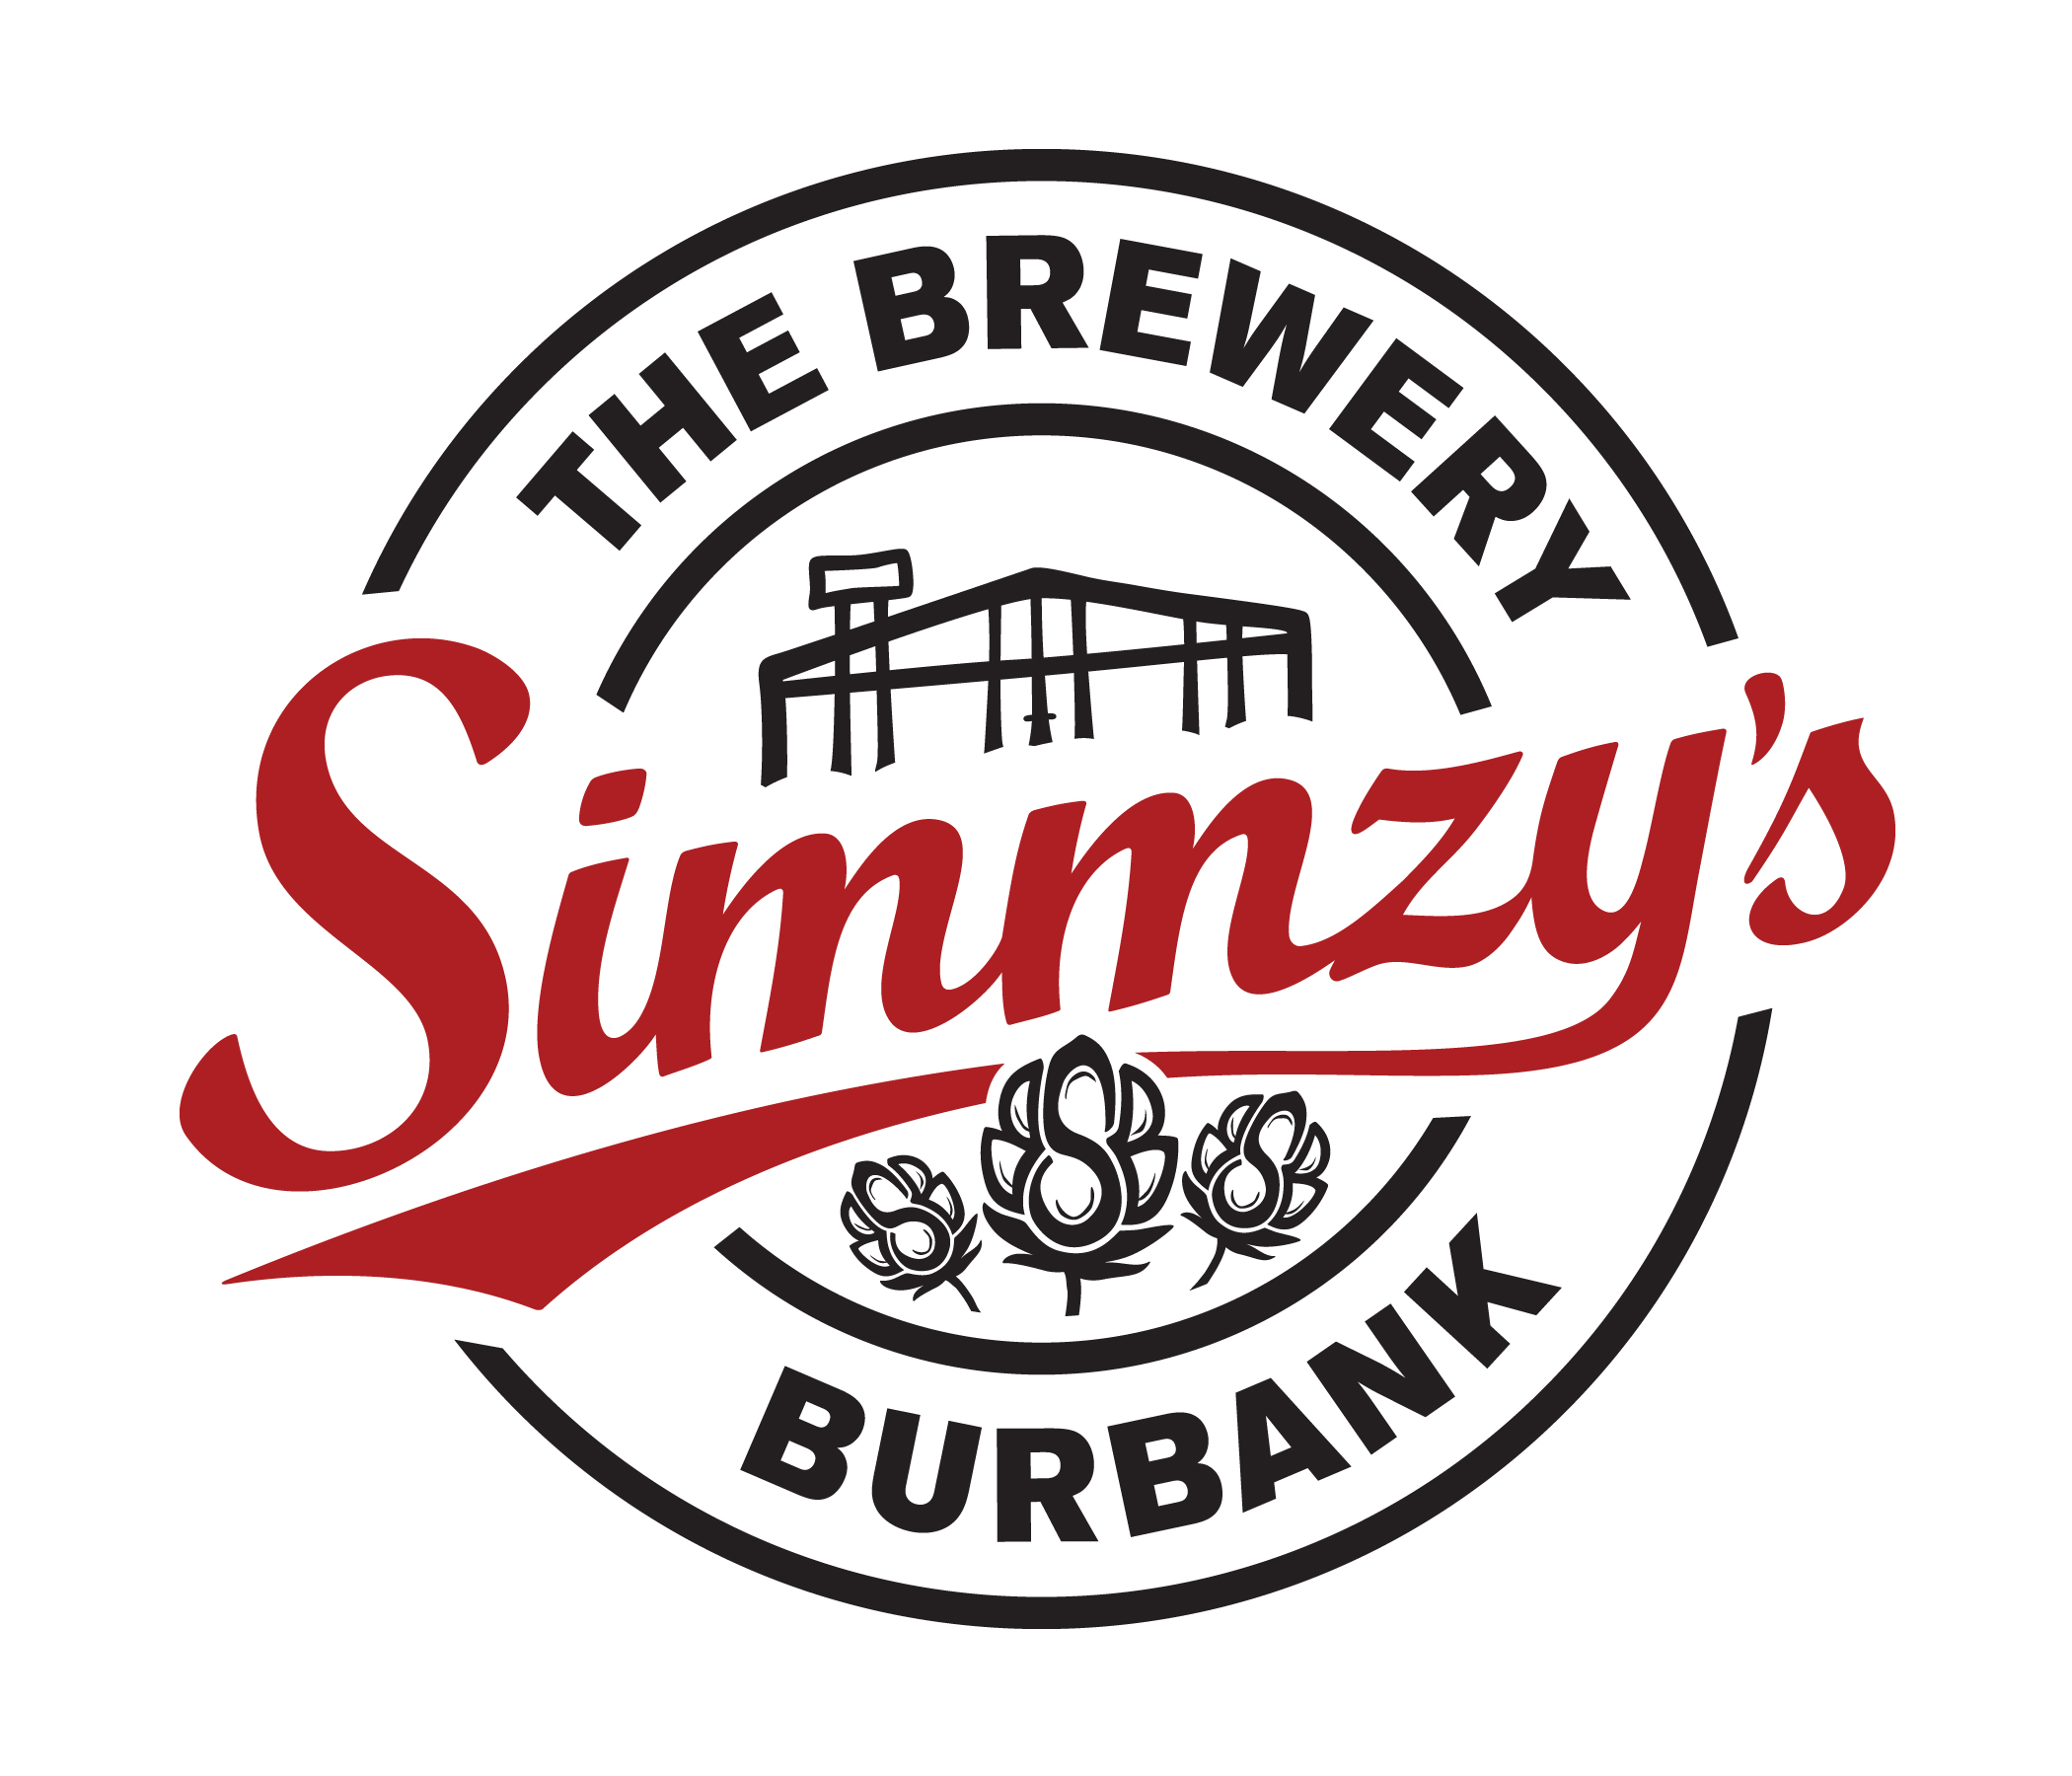 The Brewery at Simmzys Burbank